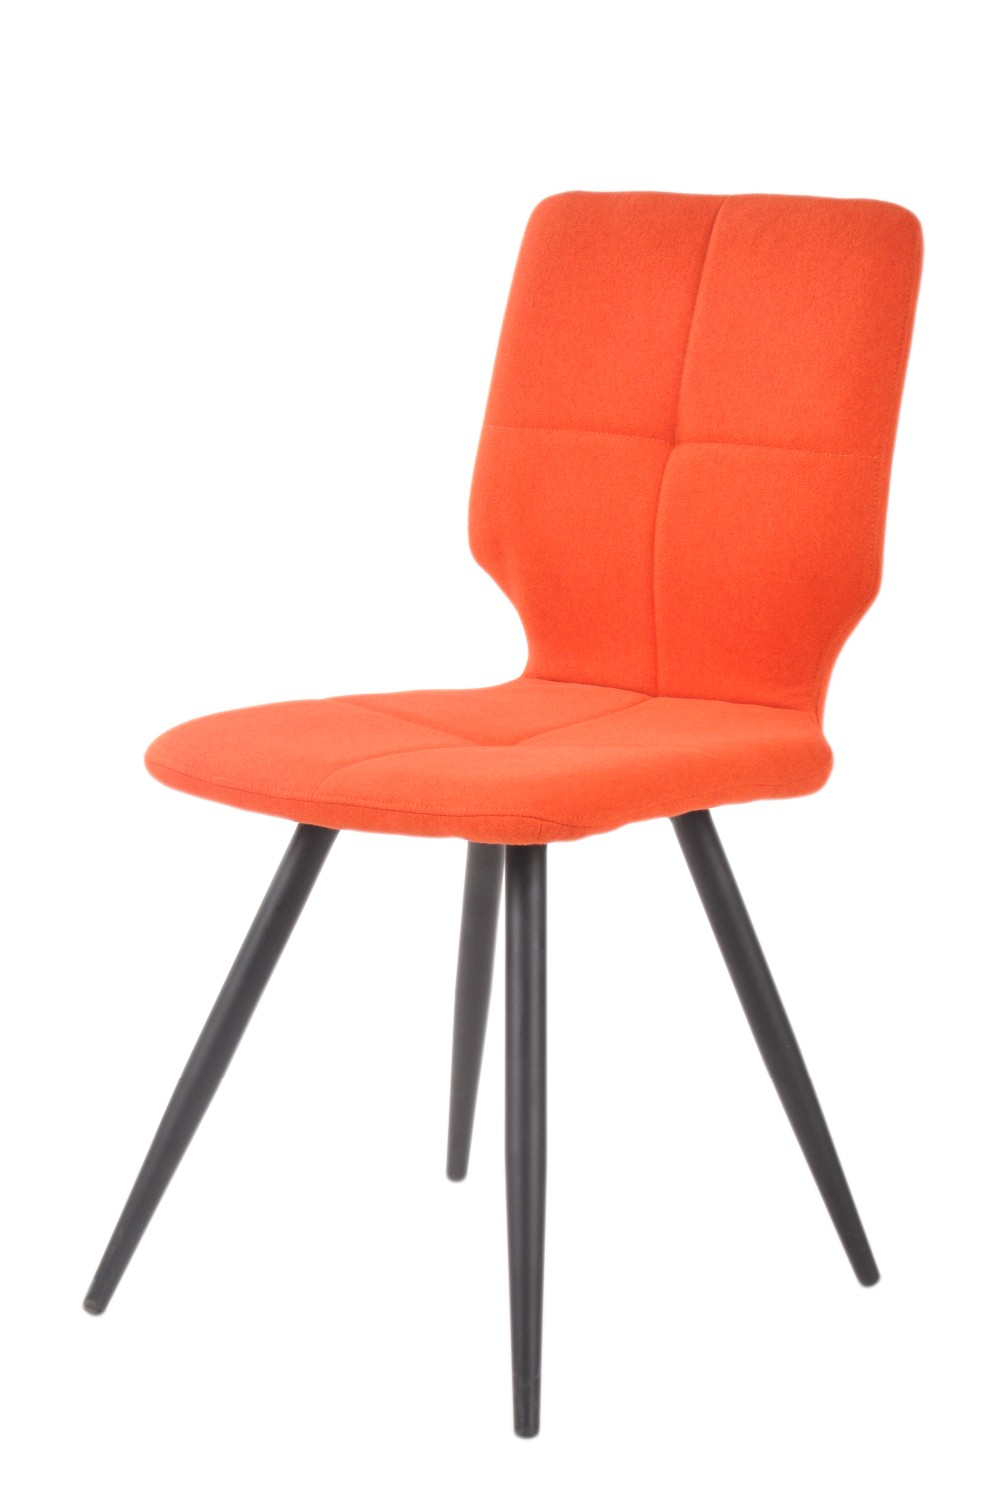 Cheap high quality dining chairs made in shengfang hebei for Made dining chairs